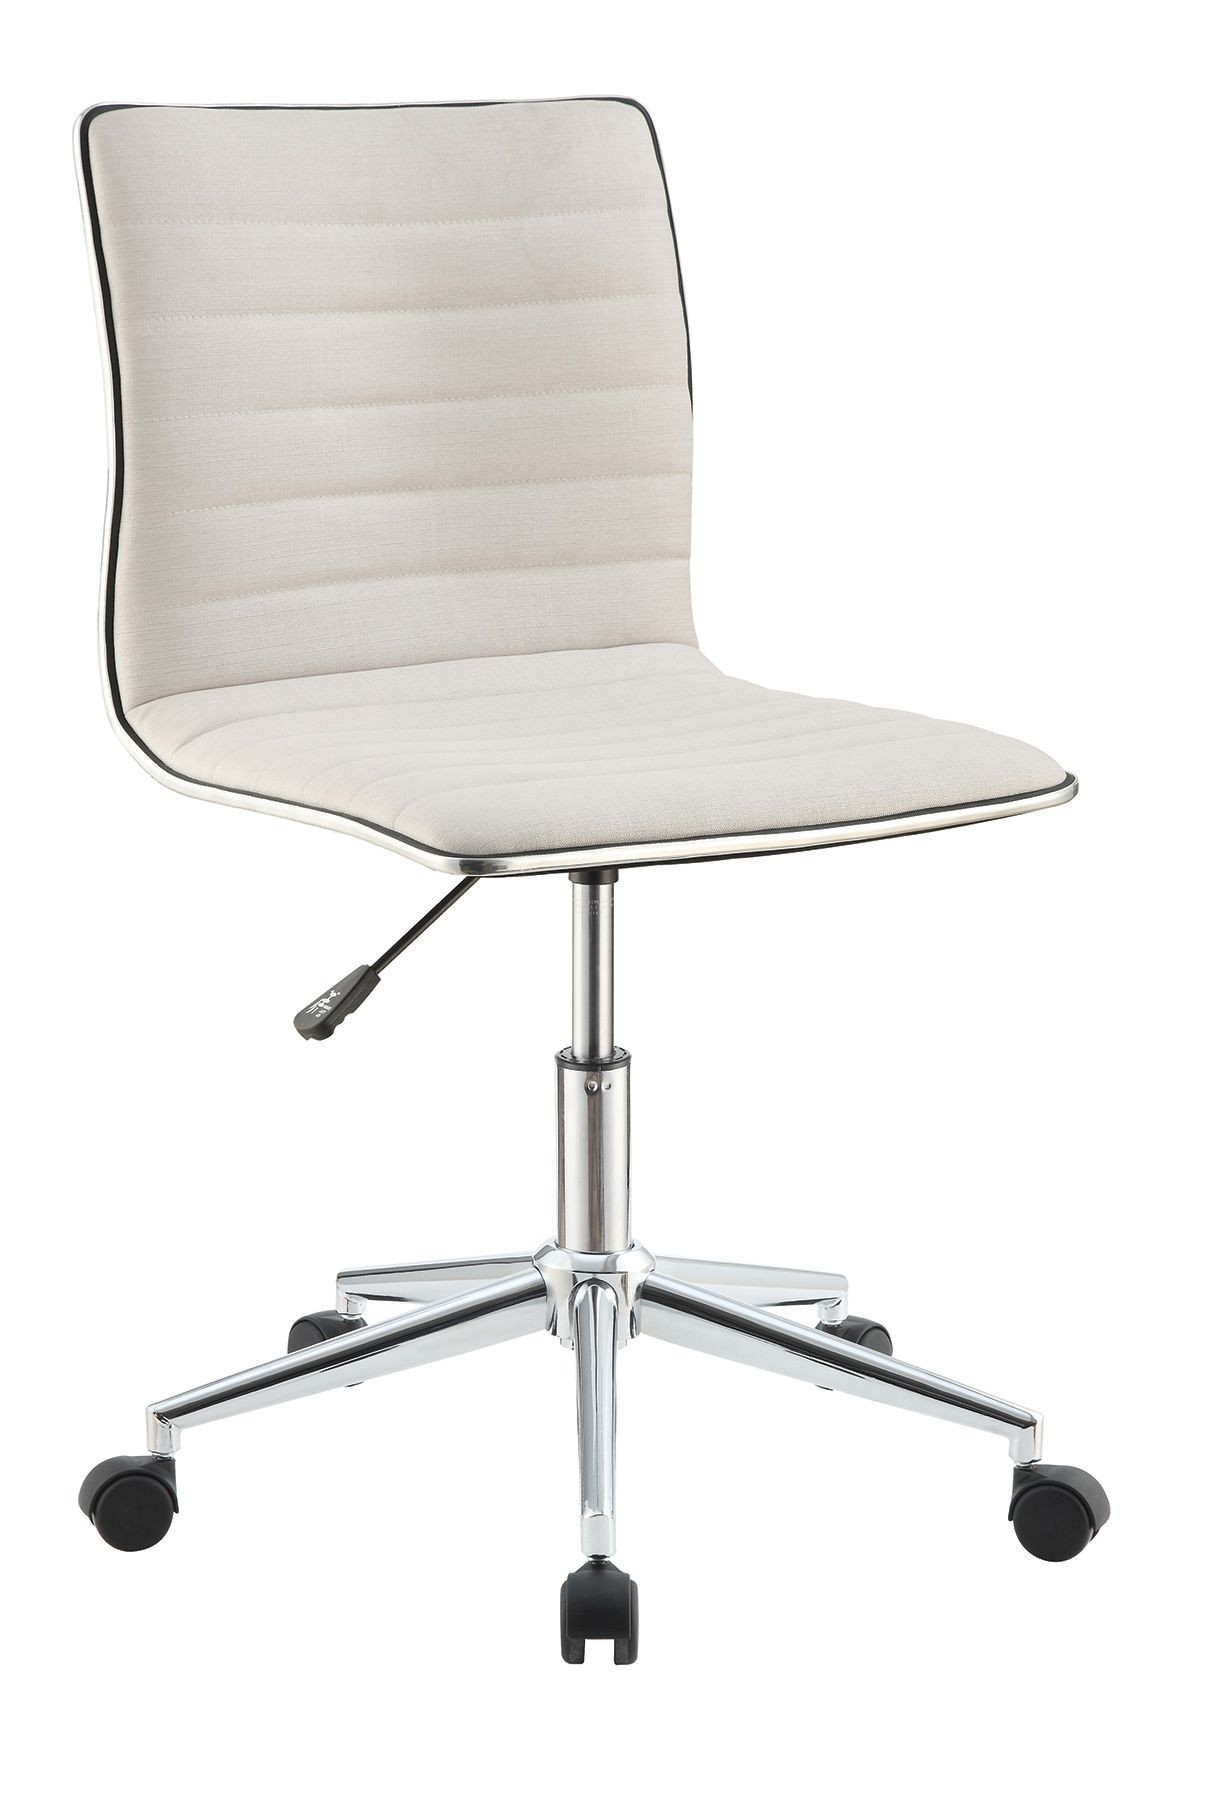 800726 cream office chair from coaster 800726 coleman